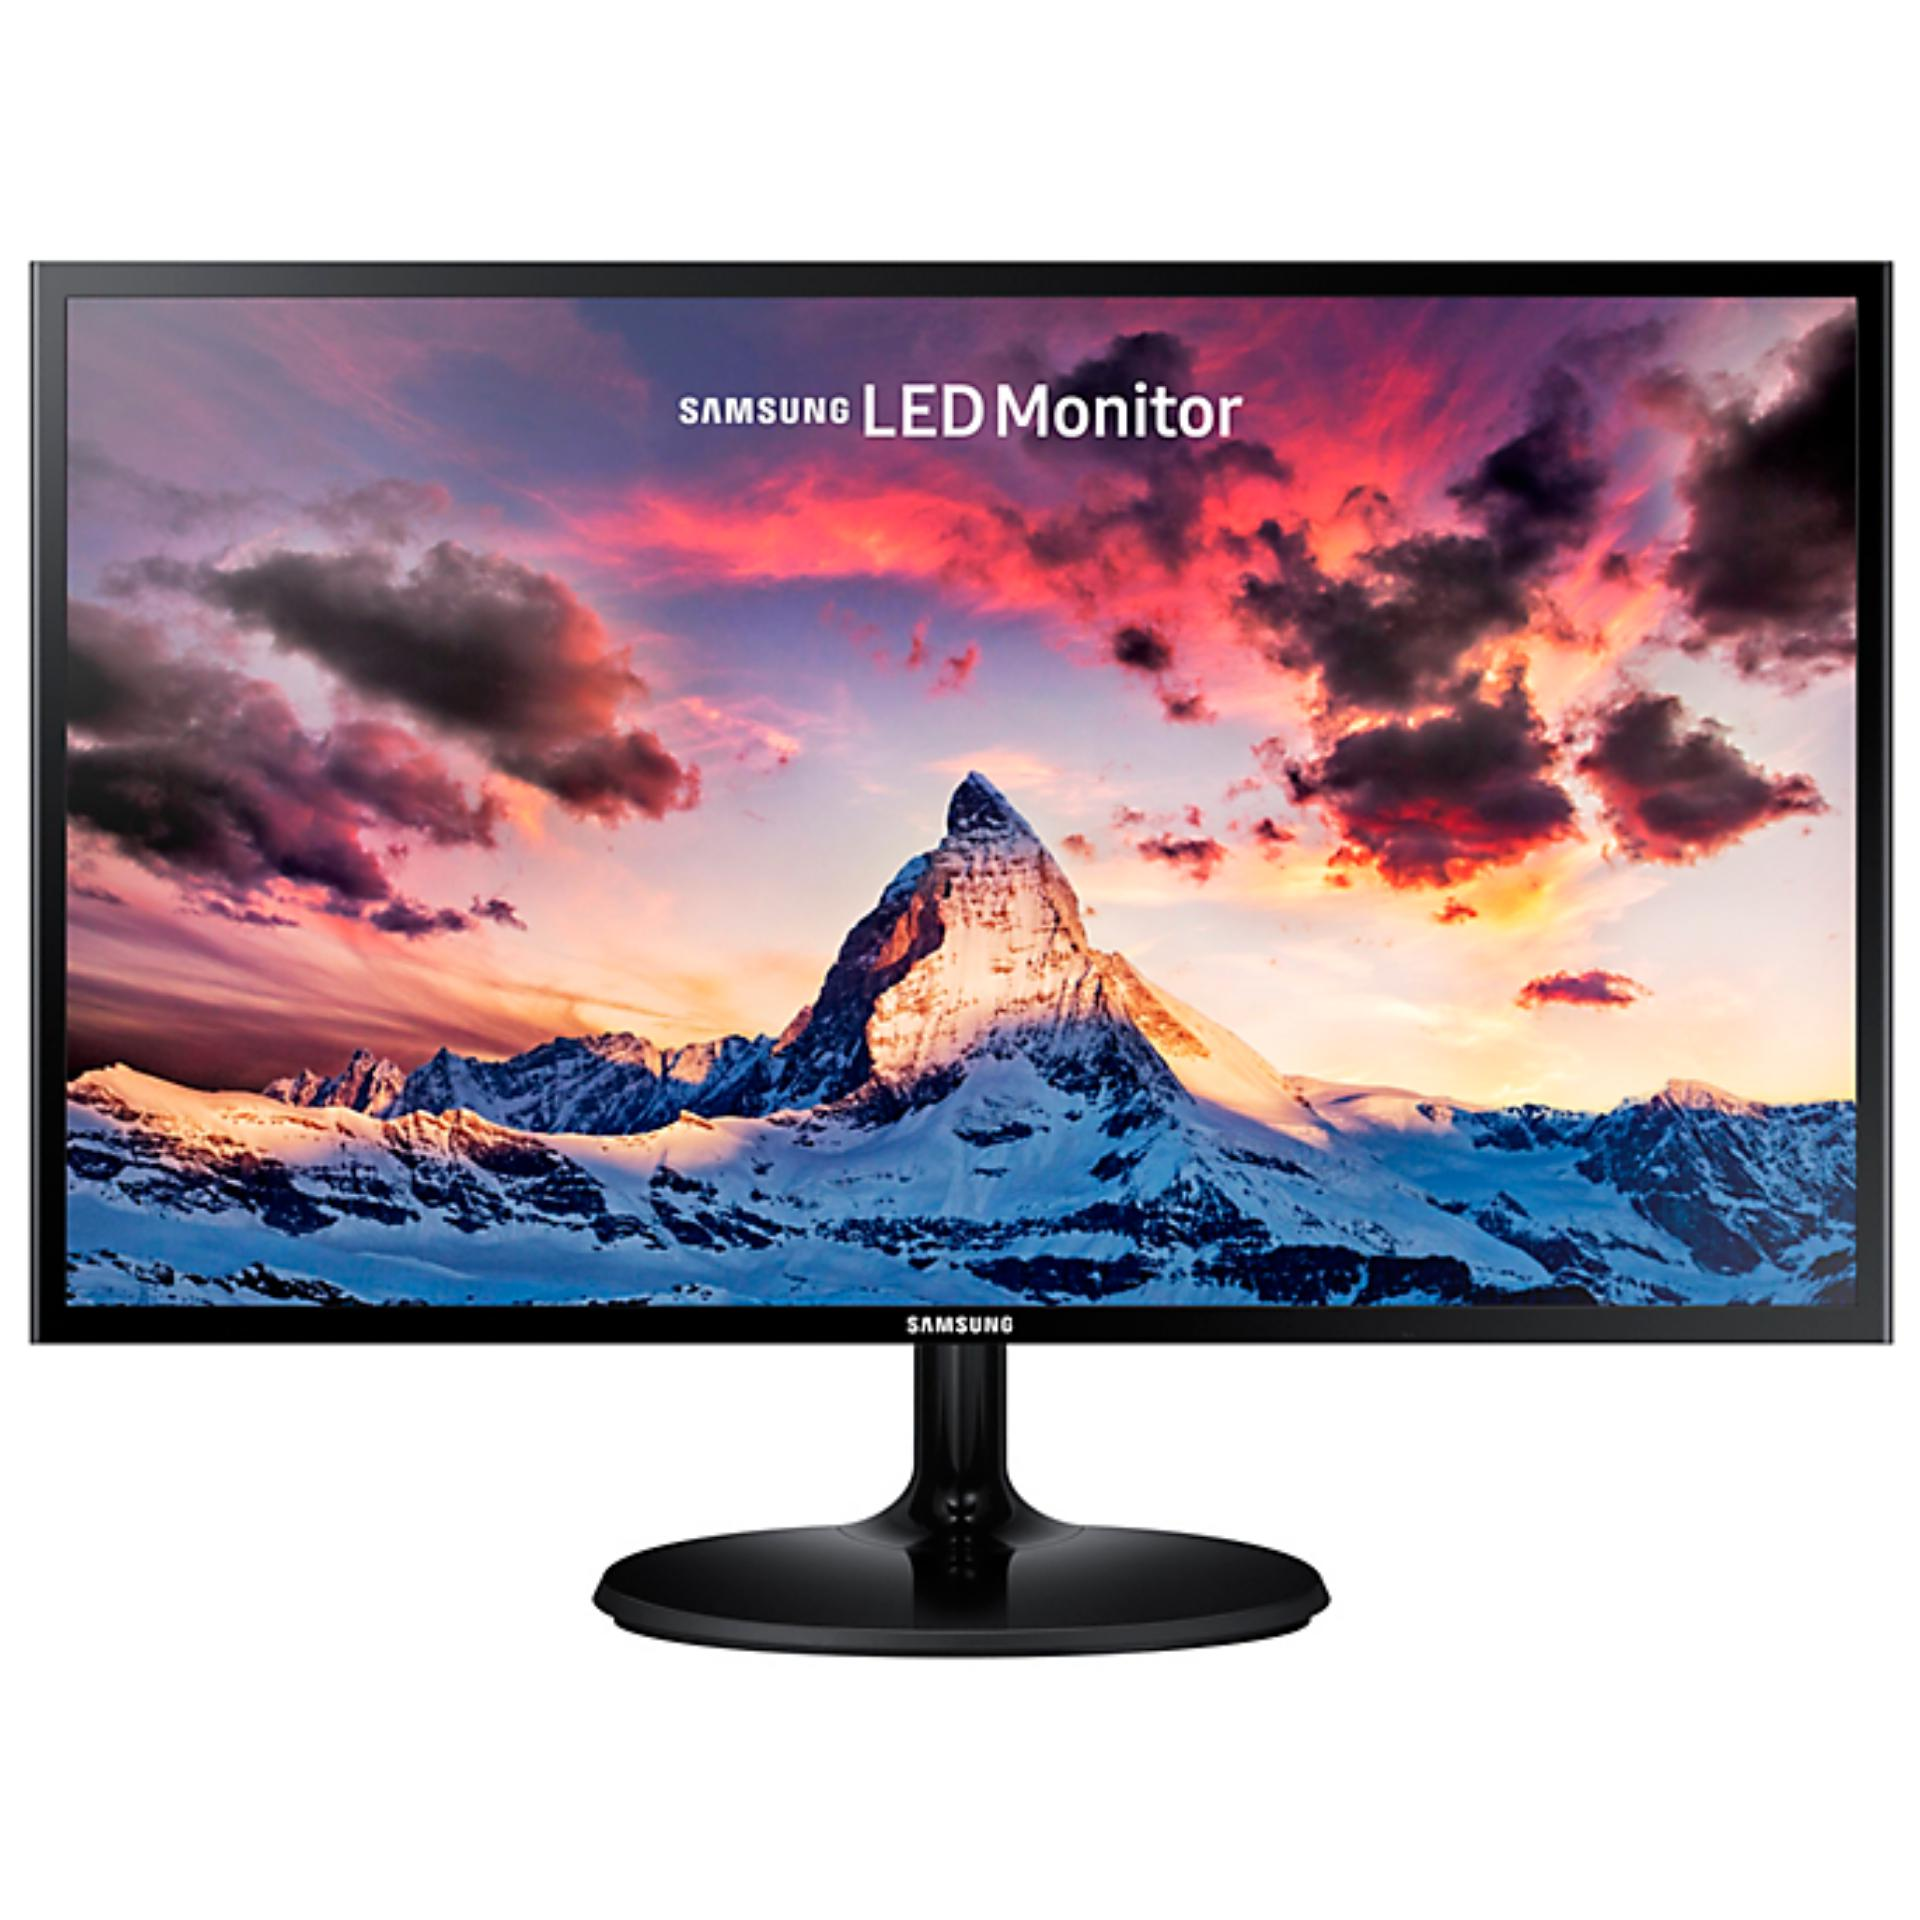 SAMSUNG LED MONITOR 19